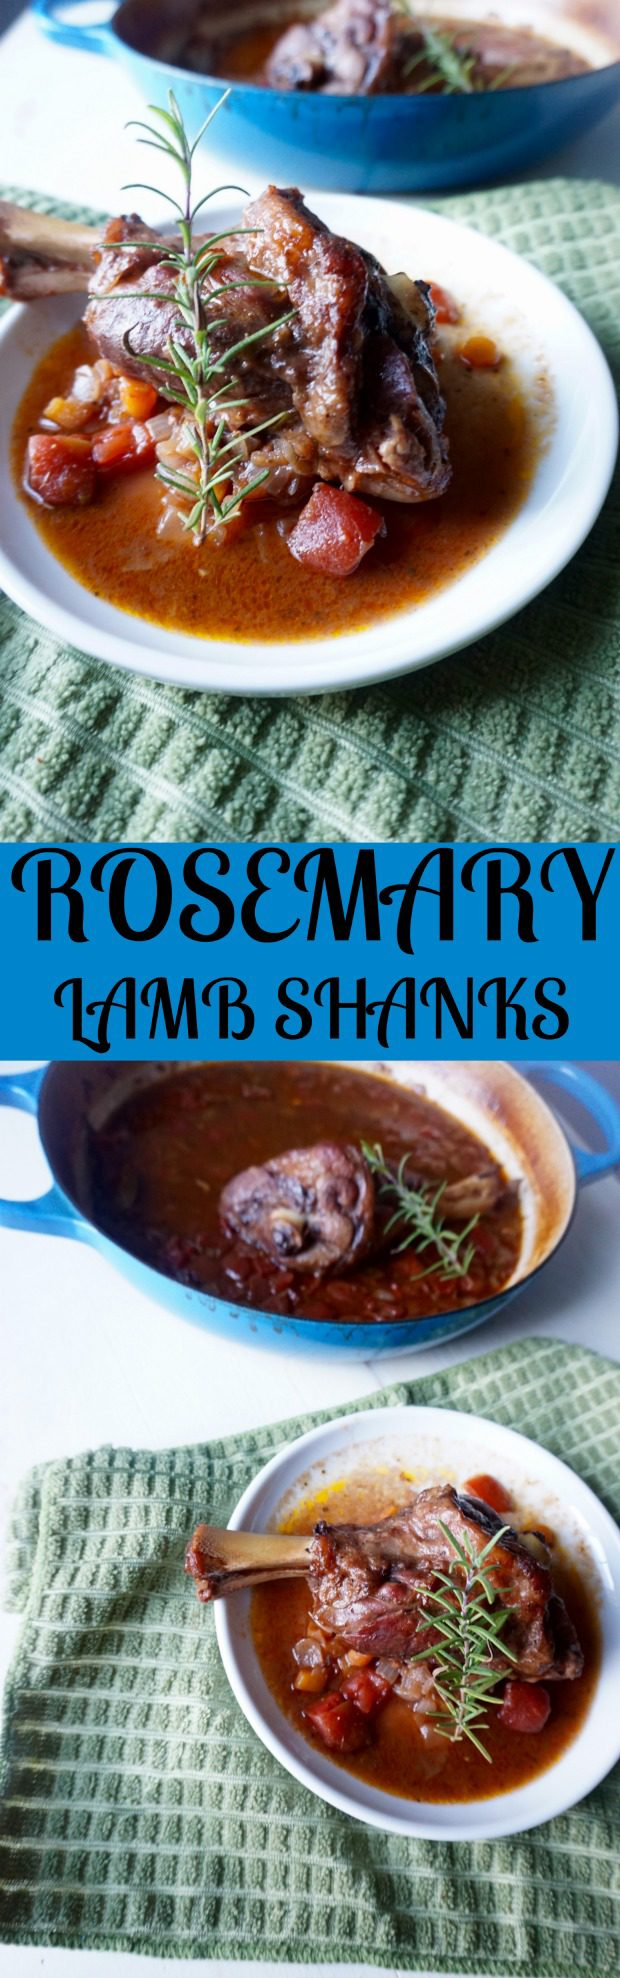 Rosemary Lamb Shanks recipe | TheFoodiePatootie.com